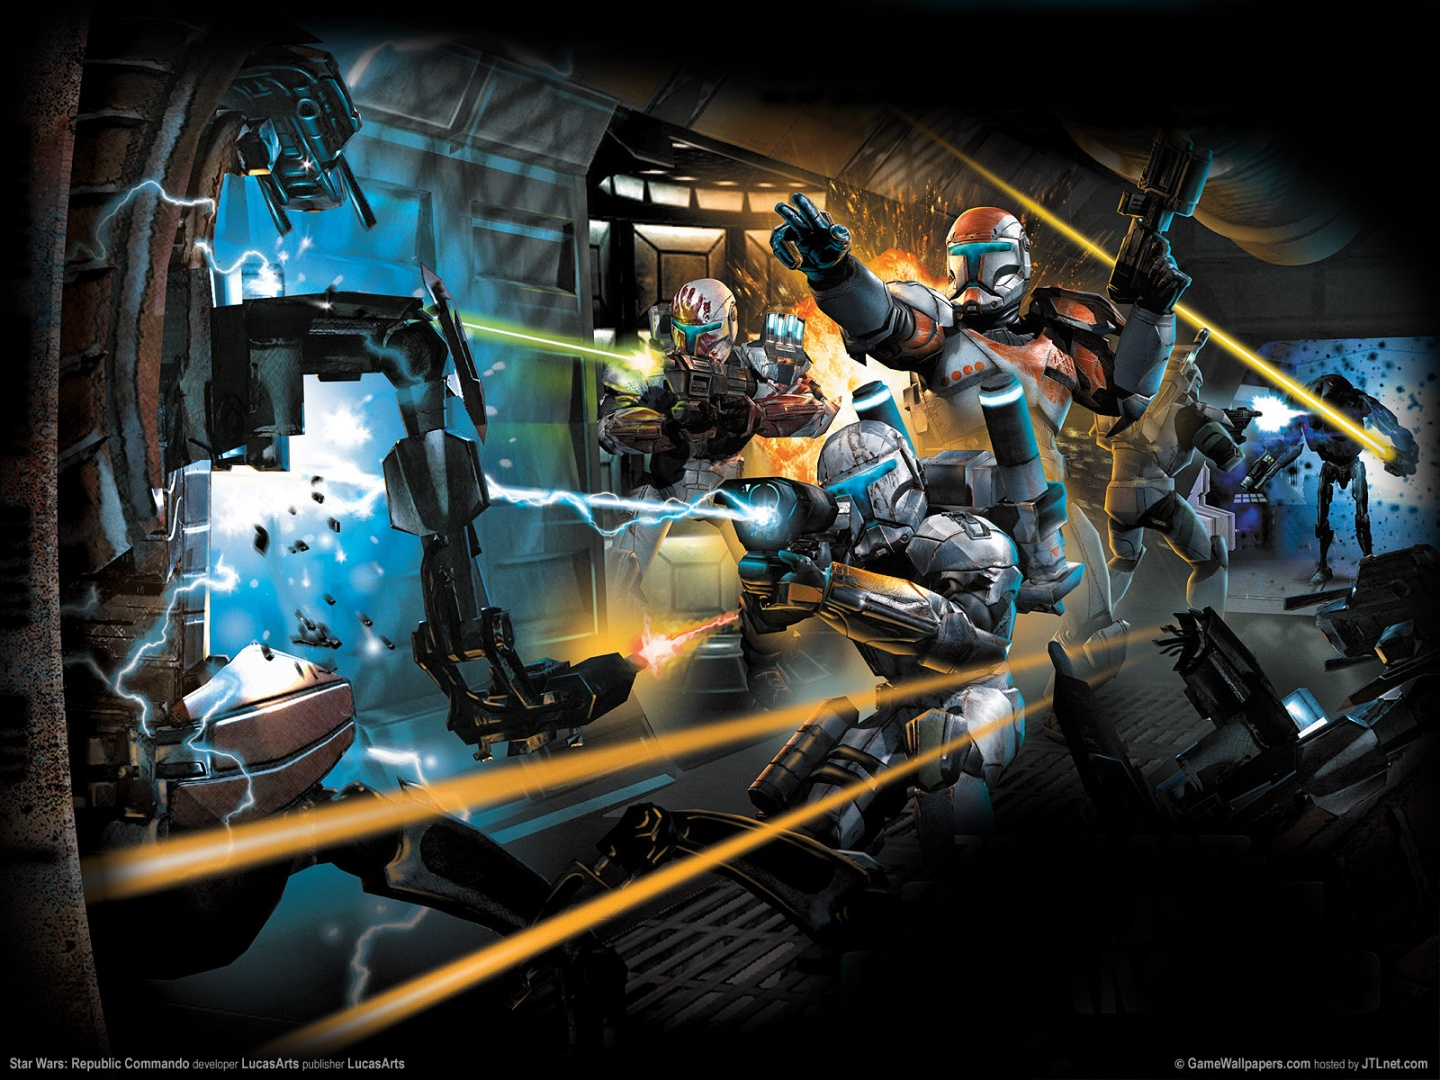 Commando 2 Wallpaper: Star Wars: Republic Commando Wallpapers